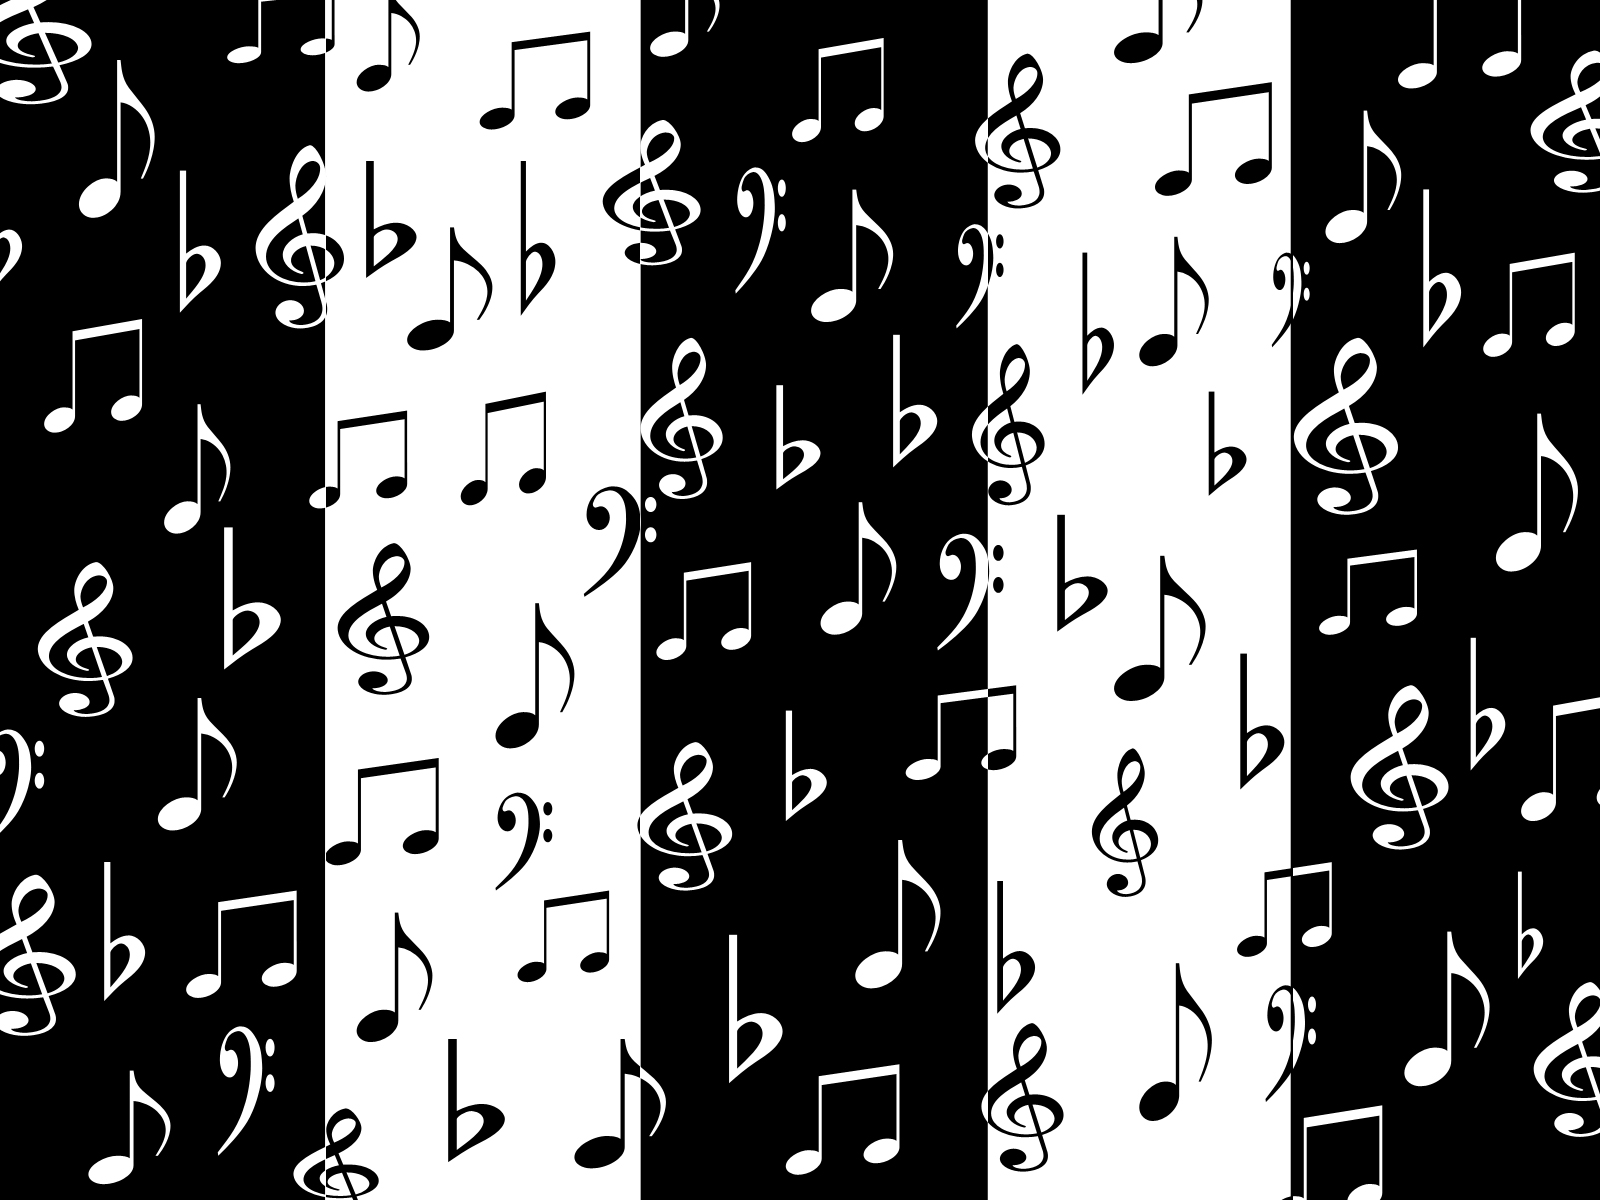 White Music Note On Black Background Picture Gallery - Music Notes  Wallpaper Black And White - 1600x1200 Wallpaper - teahub.io